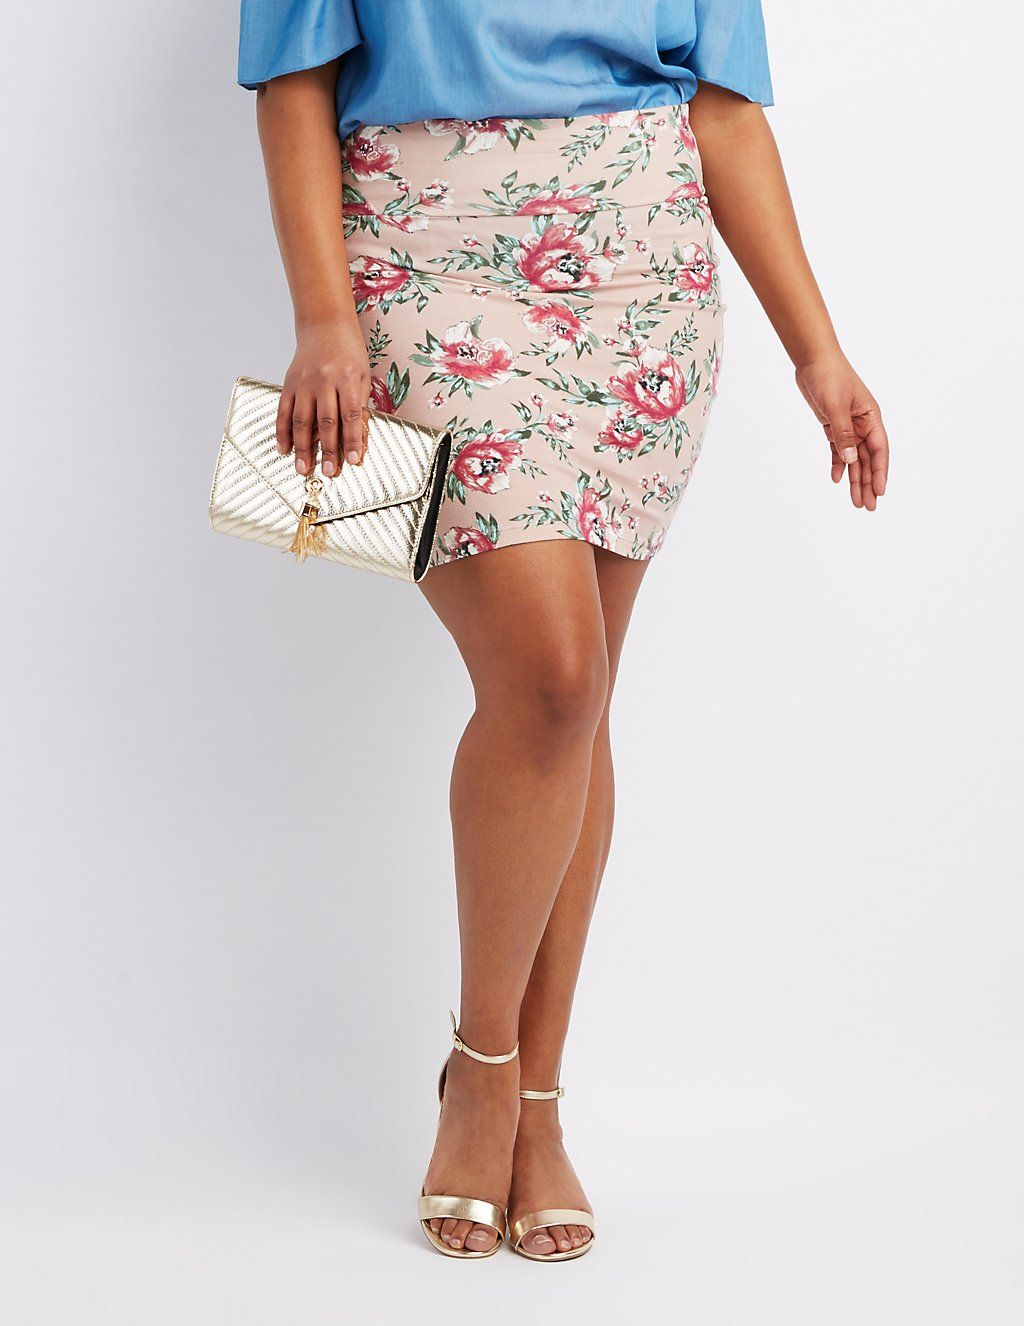 Plus Size Floral Bodycon Mini Skirt | Charlotte Russe